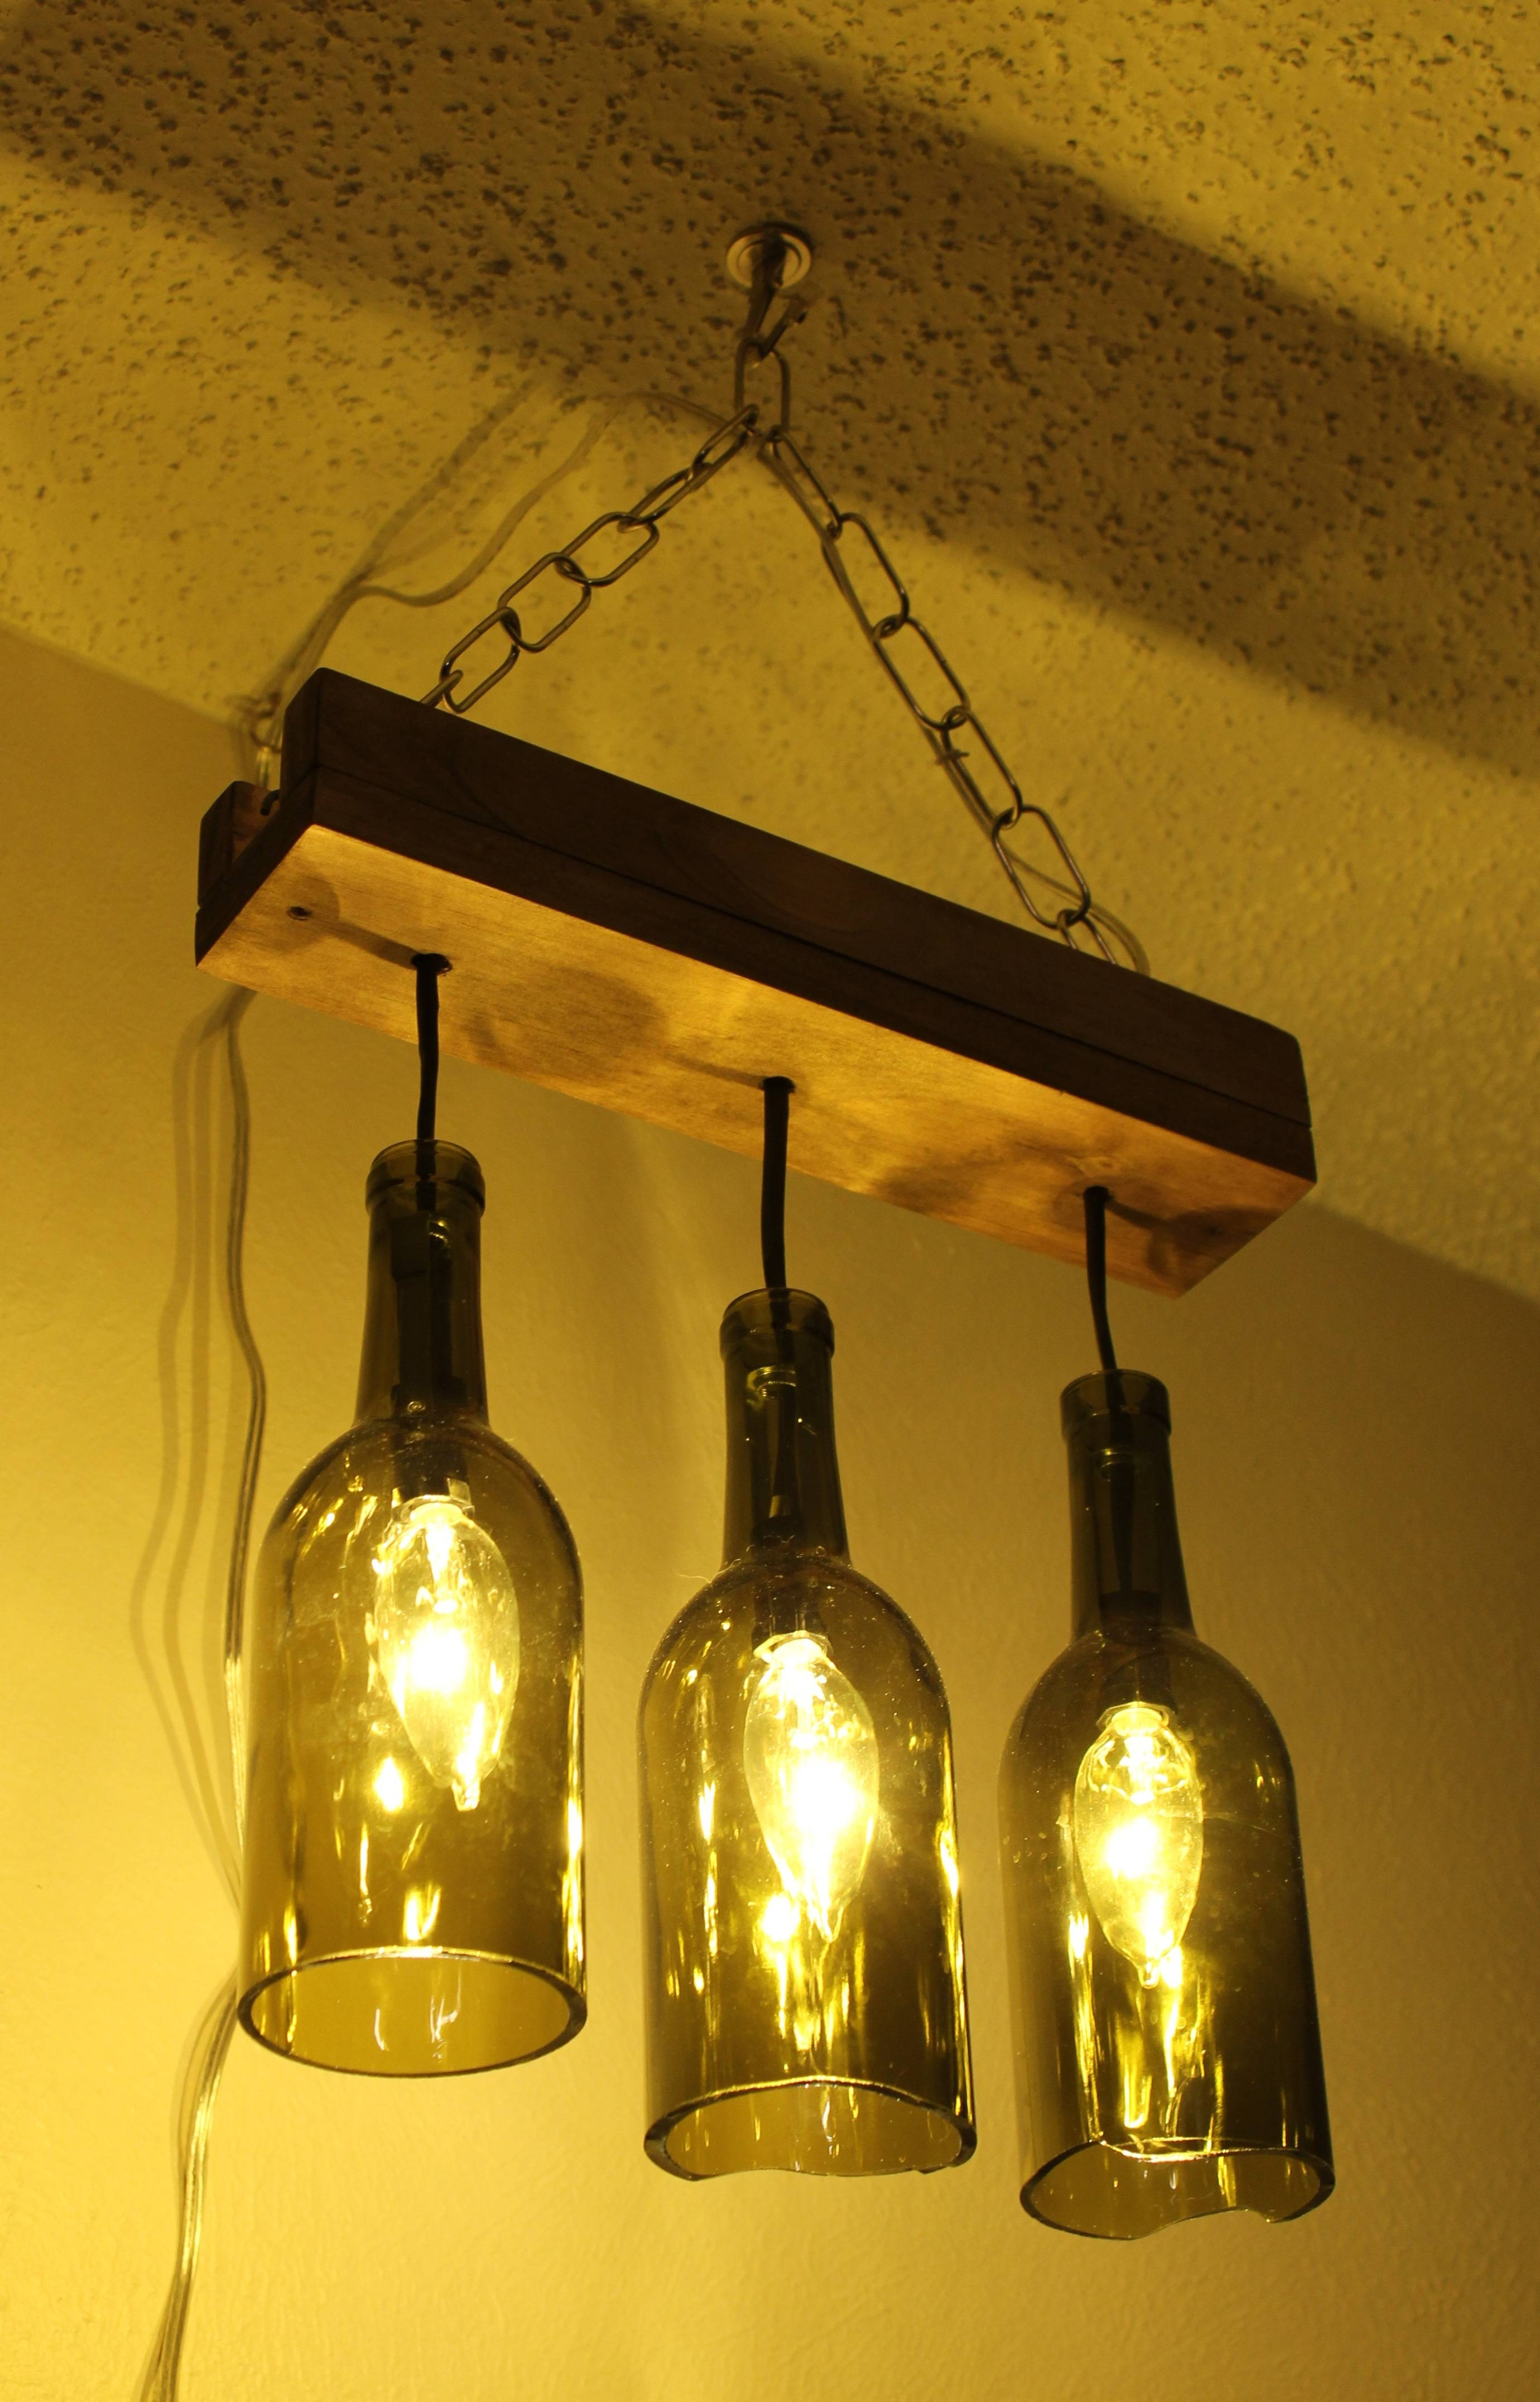 3 Wine Bottle Pendant Lamp Design Come With Rectangular Wooden Within Wine Glass Pendant Lights (Photo 13 of 15)